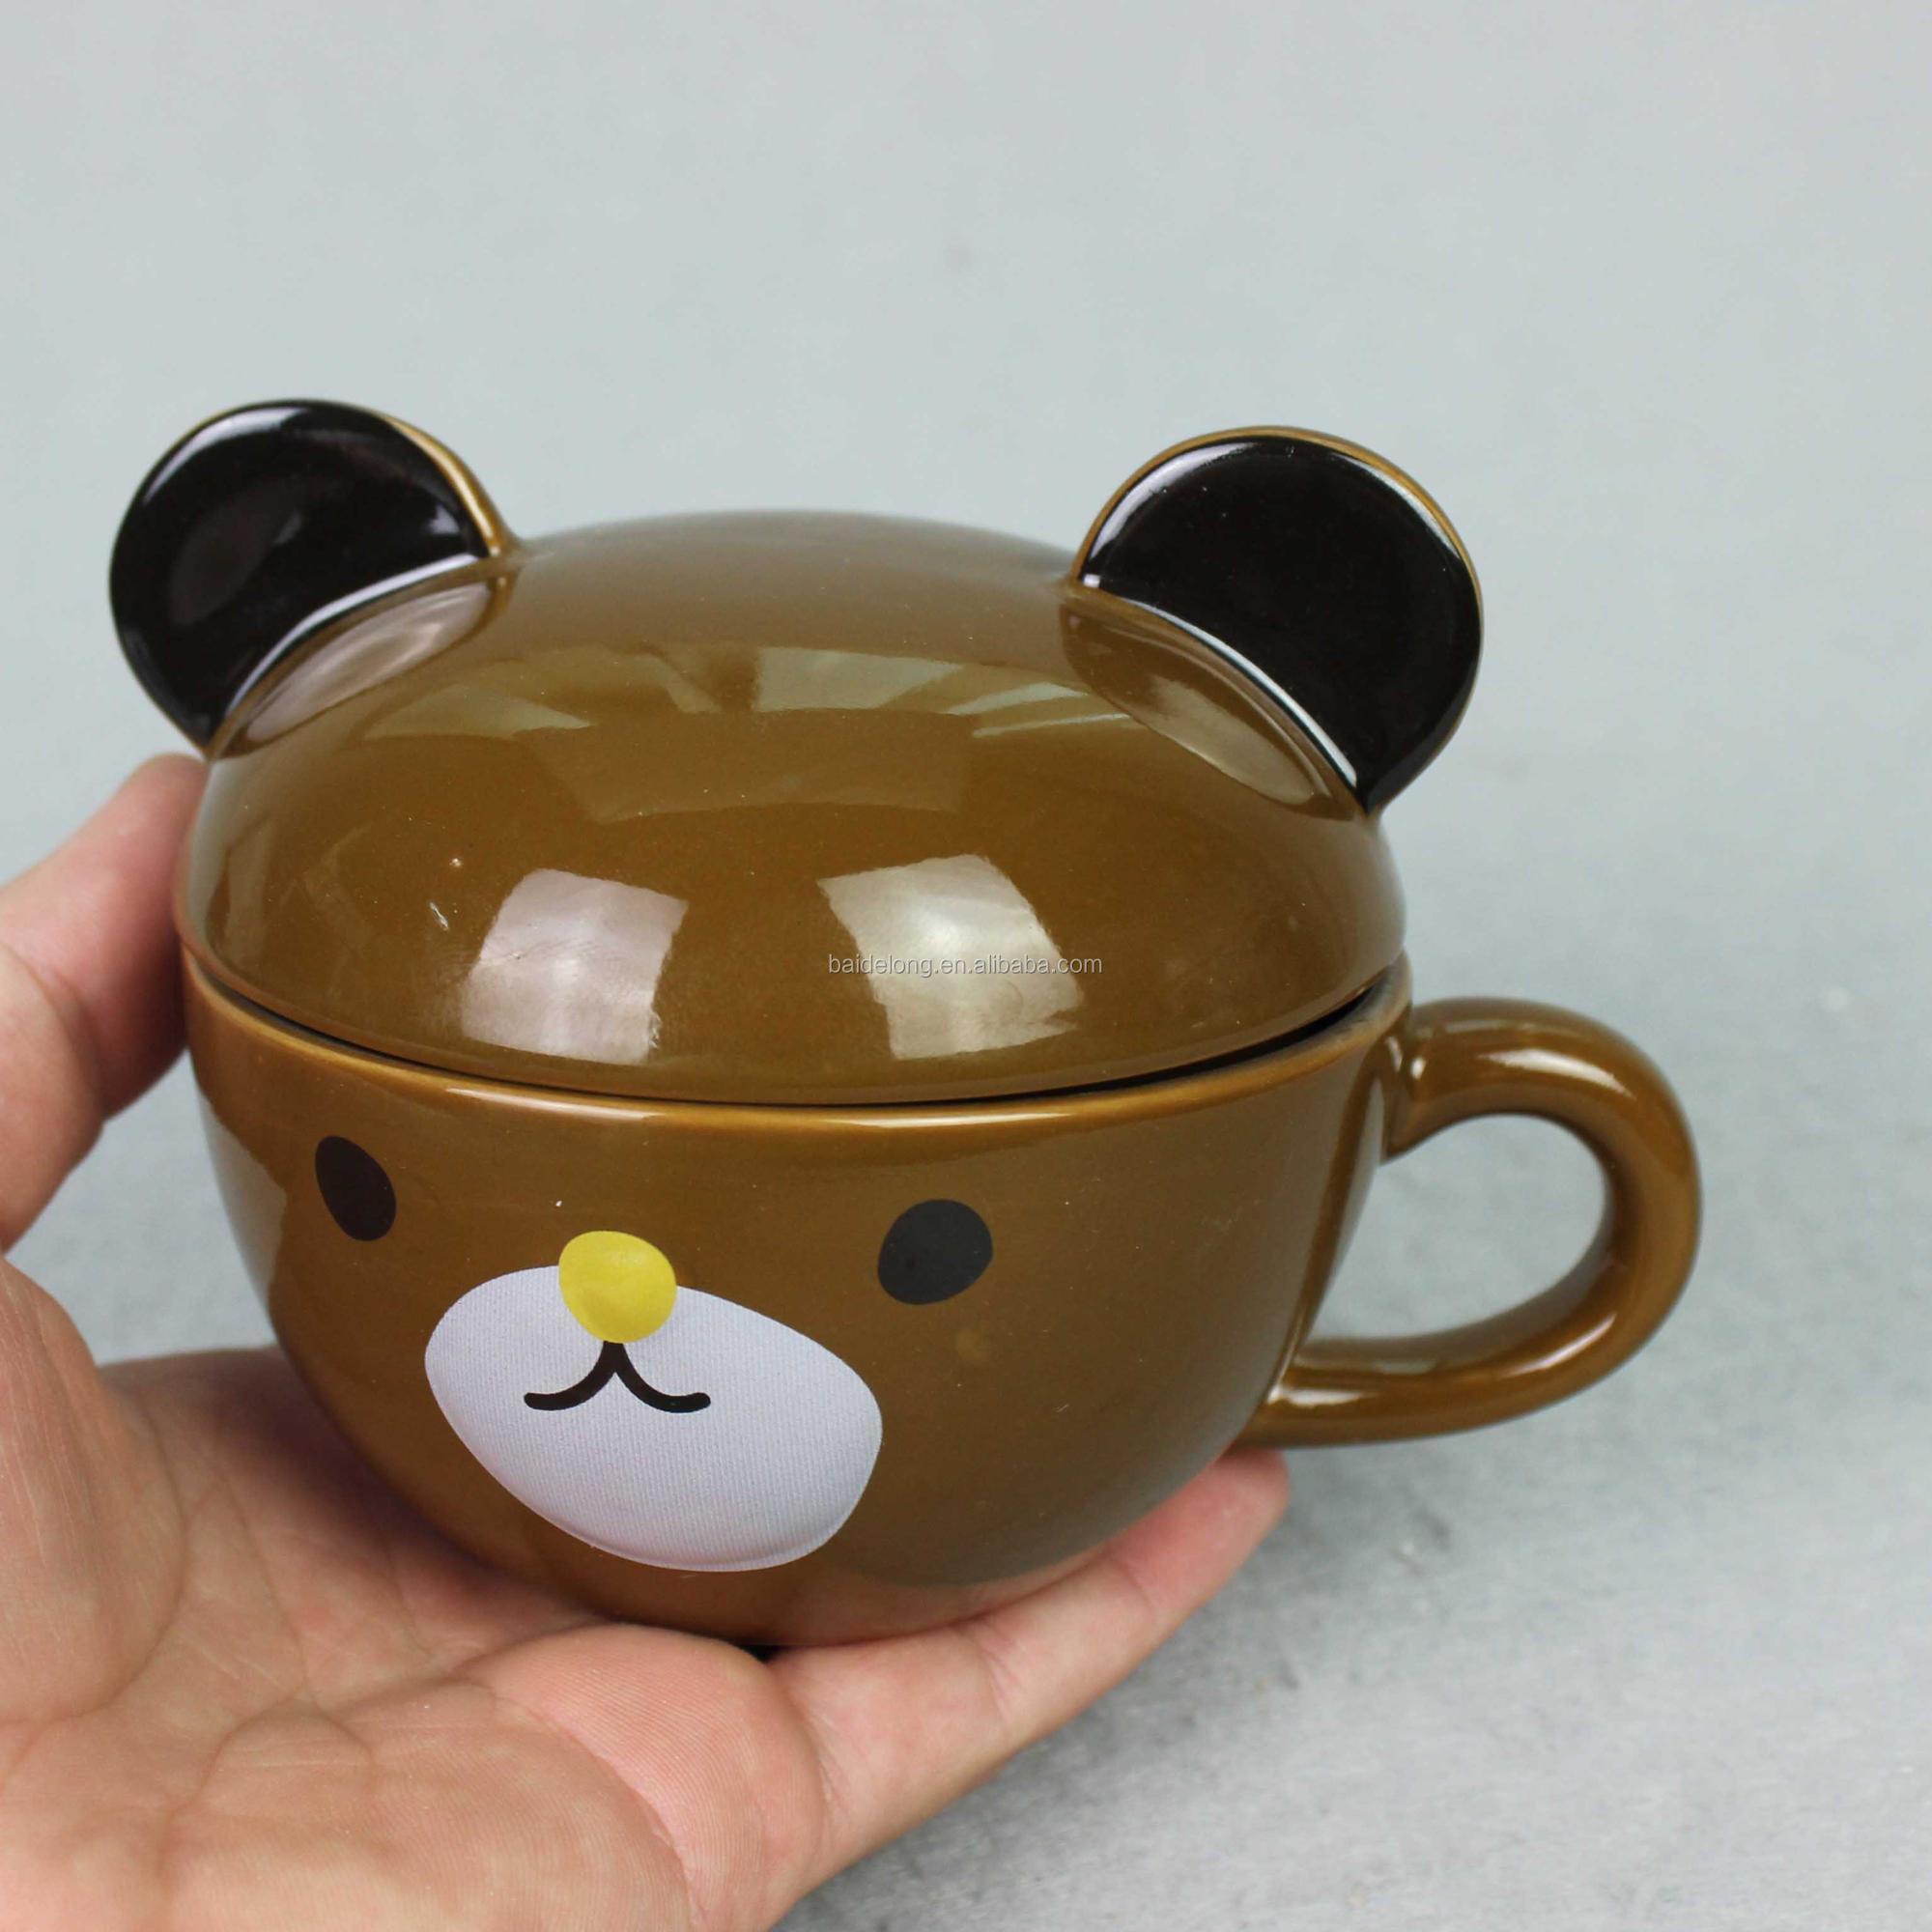 3d Coffee Mug Cute Ceramic Creative Bear Mugs Cartoon Funny Tea Cup With Lid And Handle Buy Bear Mugs With Lid Tea Cup With Logo Ceramic Tea Cup With Infuser Product On Alibaba Com